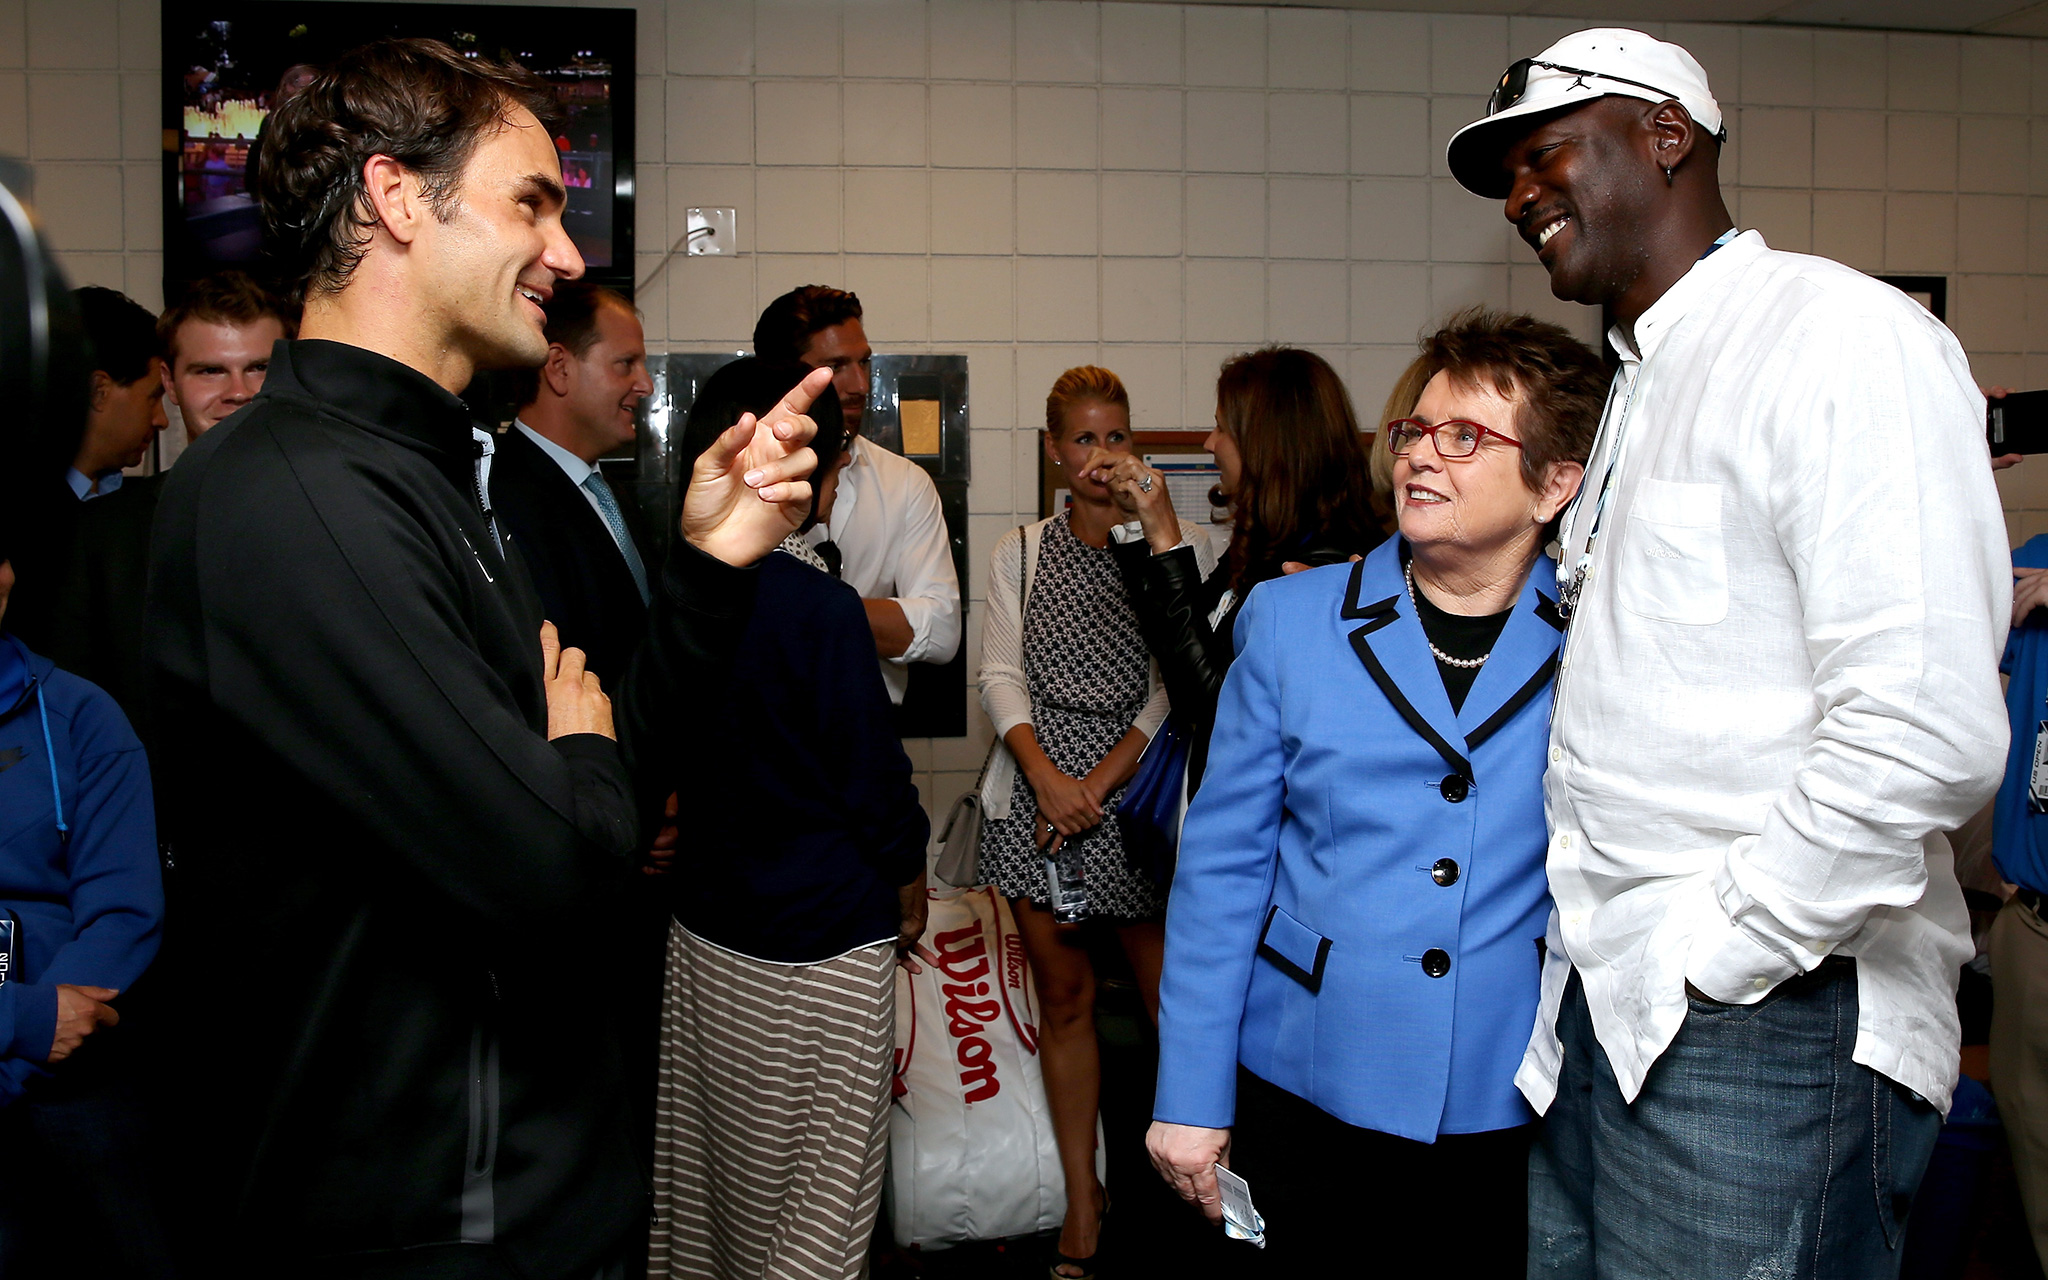 The stars came out for Roger Federer in his first-round match Tuesday, including the likes of Billie Jean King and Michael Jordan.